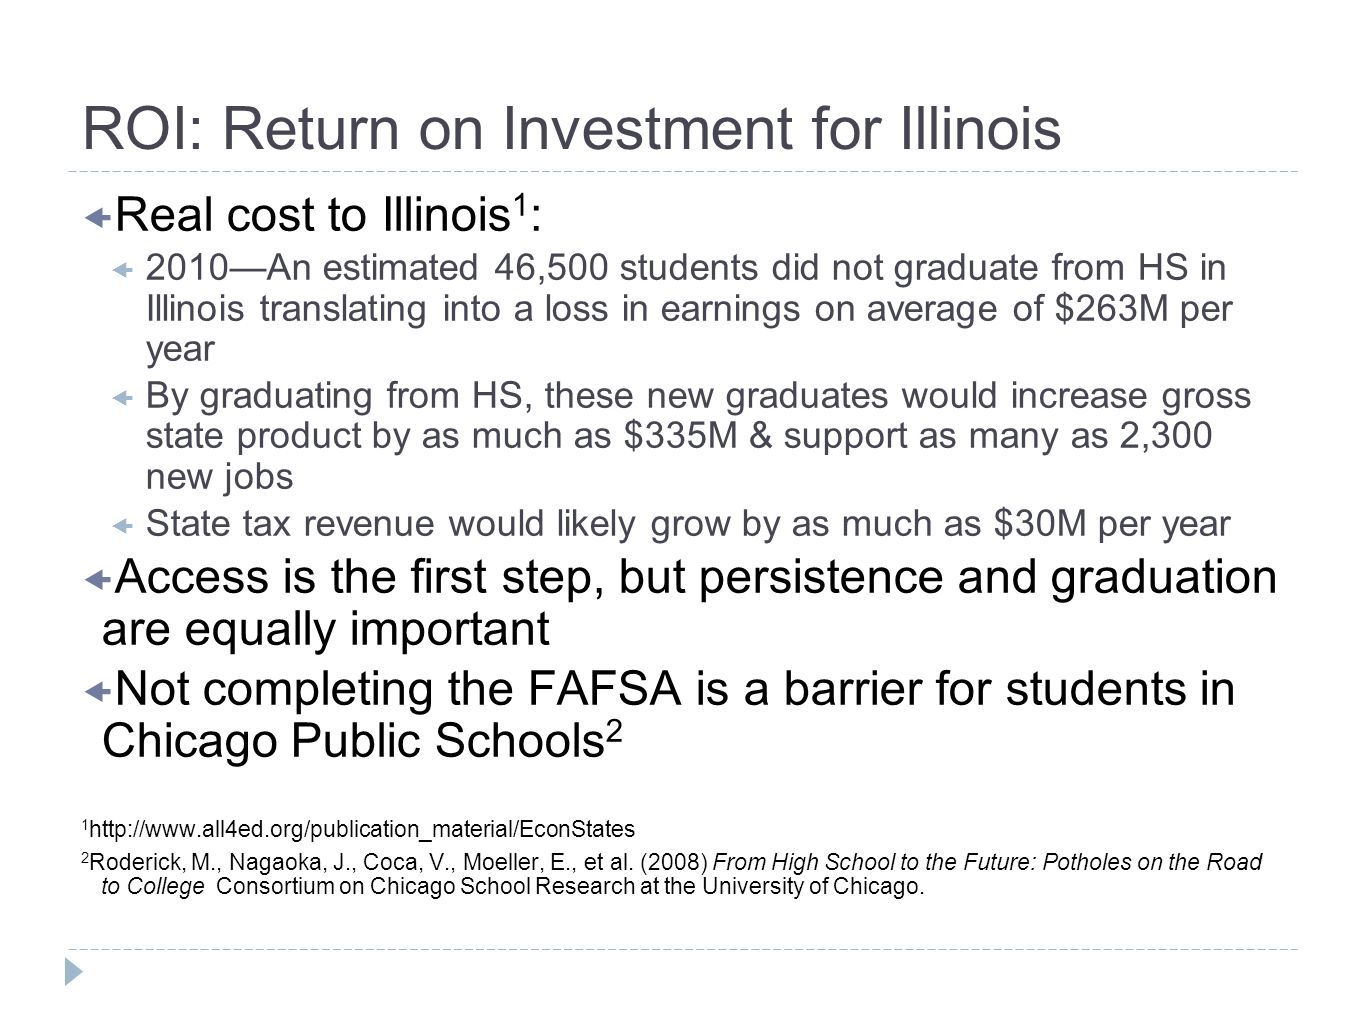 ROI: Return on Investment for Illinois Real cost to Illinois 1 : 2010An estimated 46,500 students did not graduate from HS in Illinois translating into a loss in earnings on average of $263M per year By graduating from HS, these new graduates would increase gross state product by as much as $335M & support as many as 2,300 new jobs State tax revenue would likely grow by as much as $30M per year Access is the first step, but persistence and graduation are equally important Not completing the FAFSA is a barrier for students in Chicago Public Schools 2 1 http://www.all4ed.org/publication_material/EconStates 2 Roderick, M., Nagaoka, J., Coca, V., Moeller, E., et al.